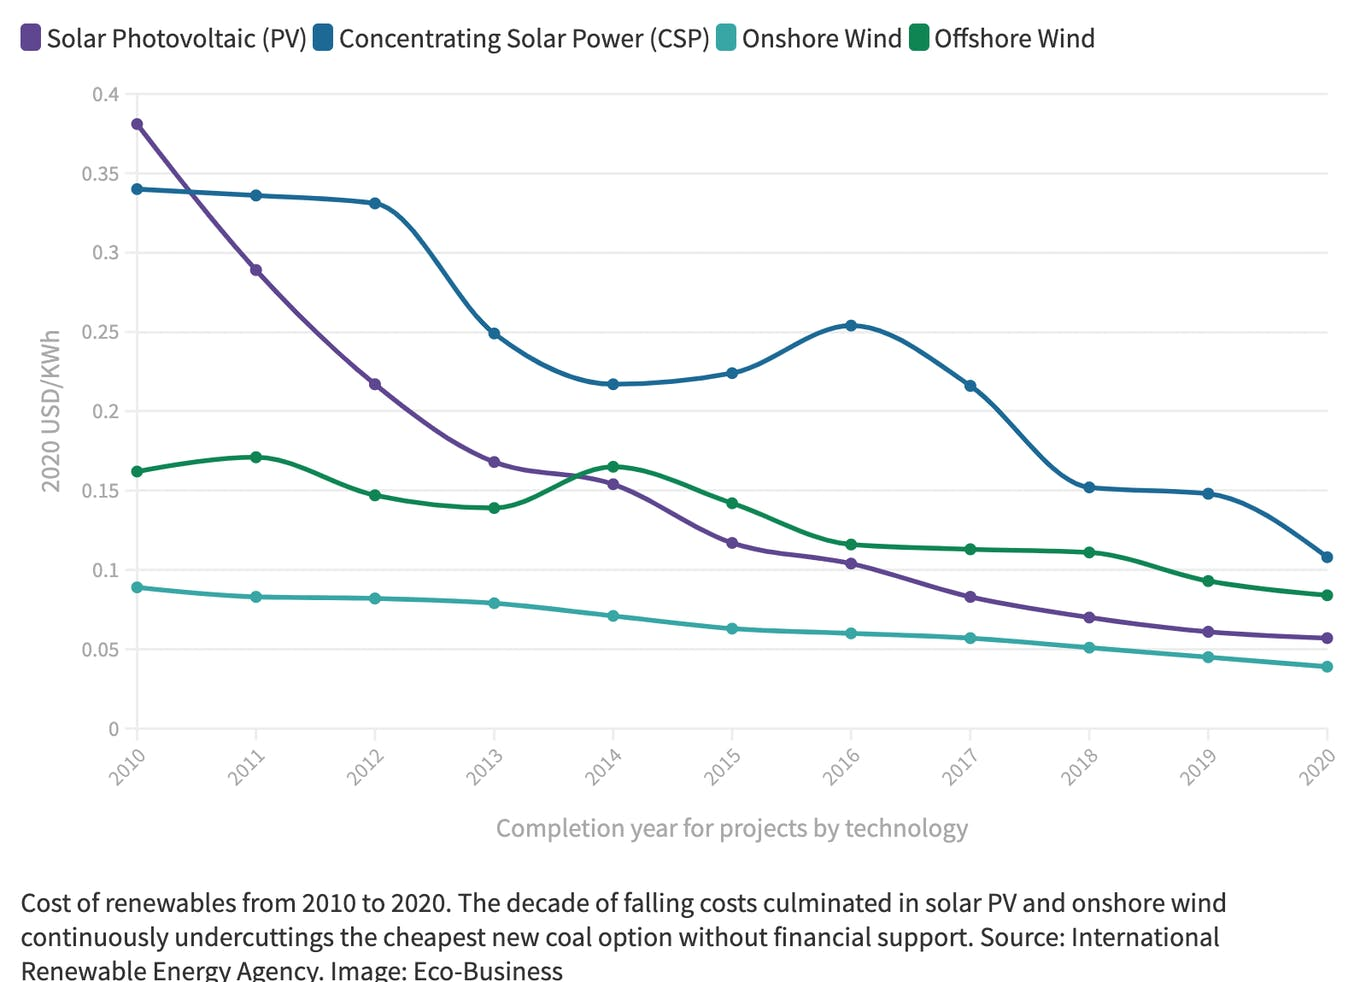 Cost of renewables from 2010 to 2020.